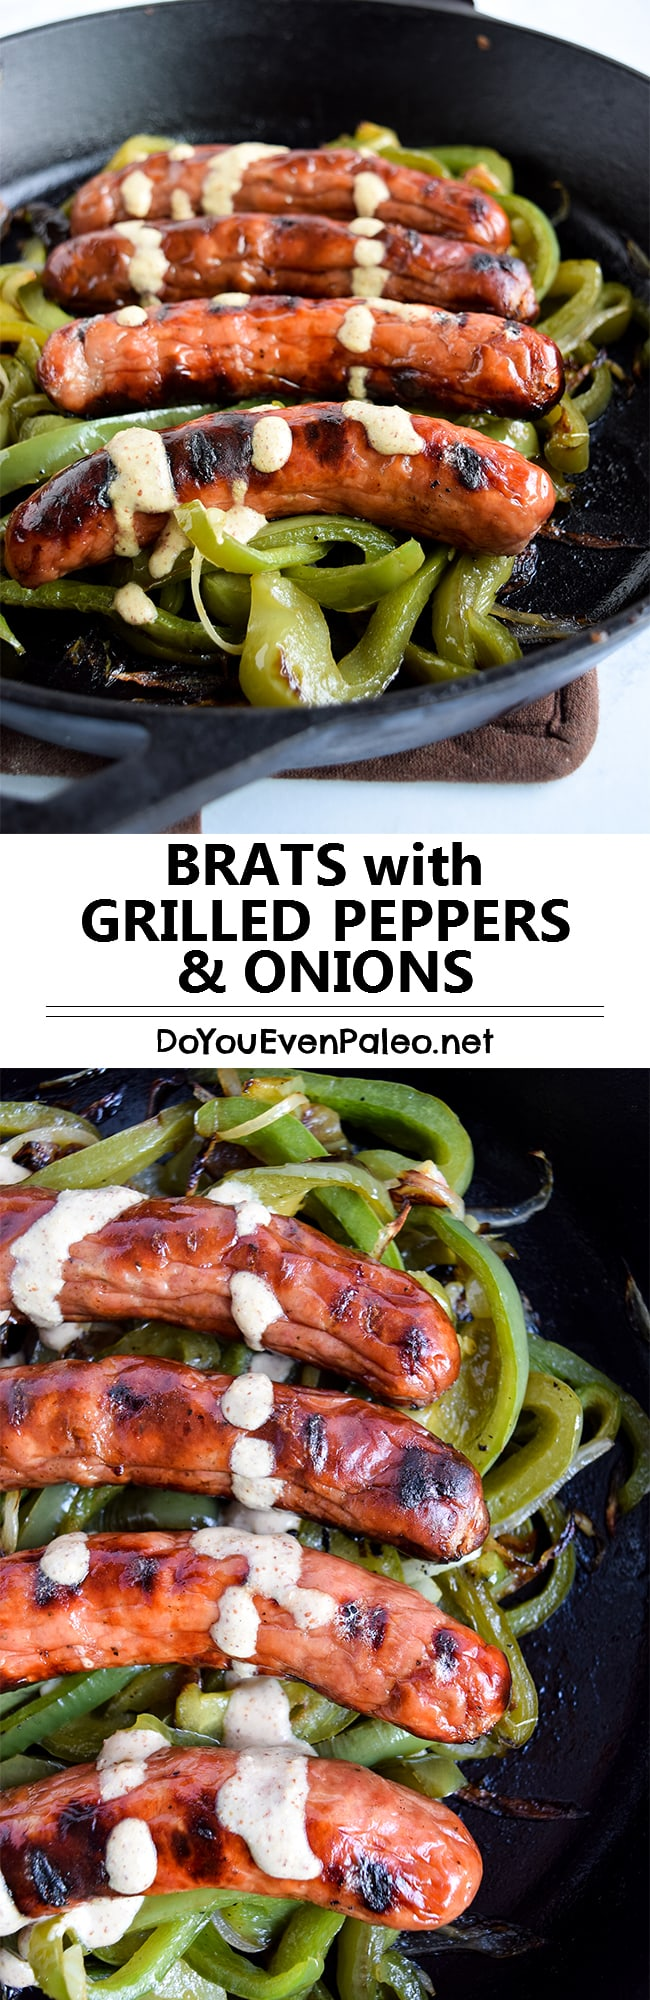 Brats with Grilled Onions & Peppers - make this entire meal on the grill in 20 minutes with the help of a cast iron skillet! | DoYouEvenPaleo.net